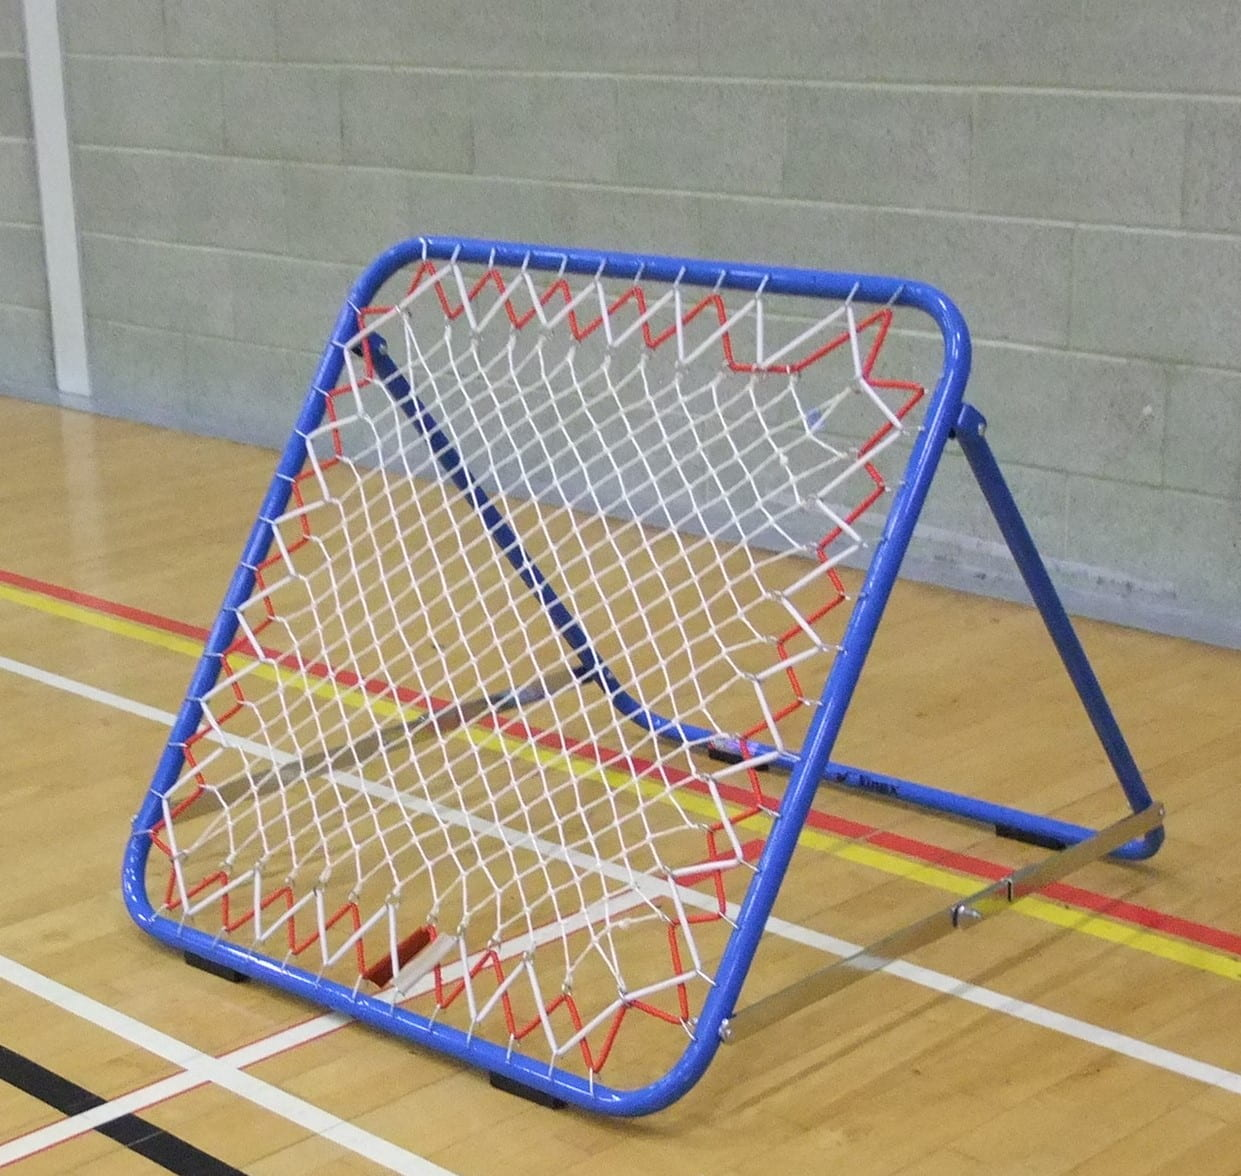 a net in the sports hall